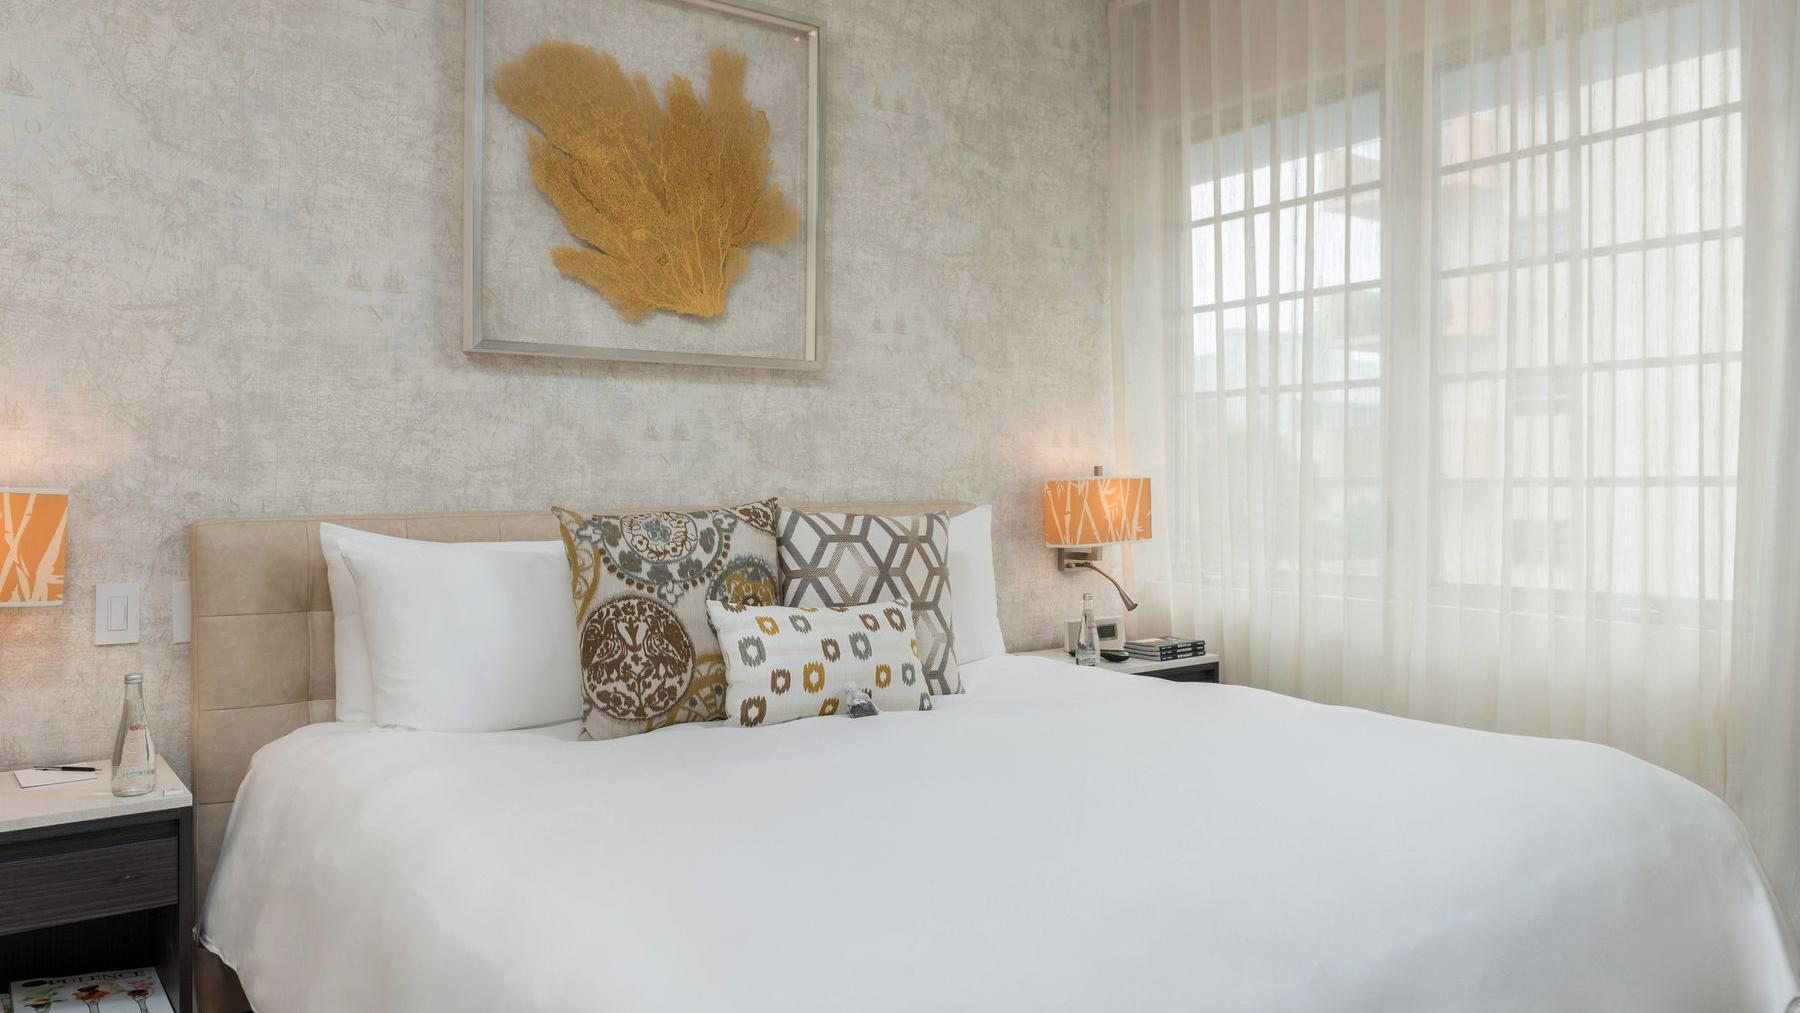 bed with white sheets and wall art